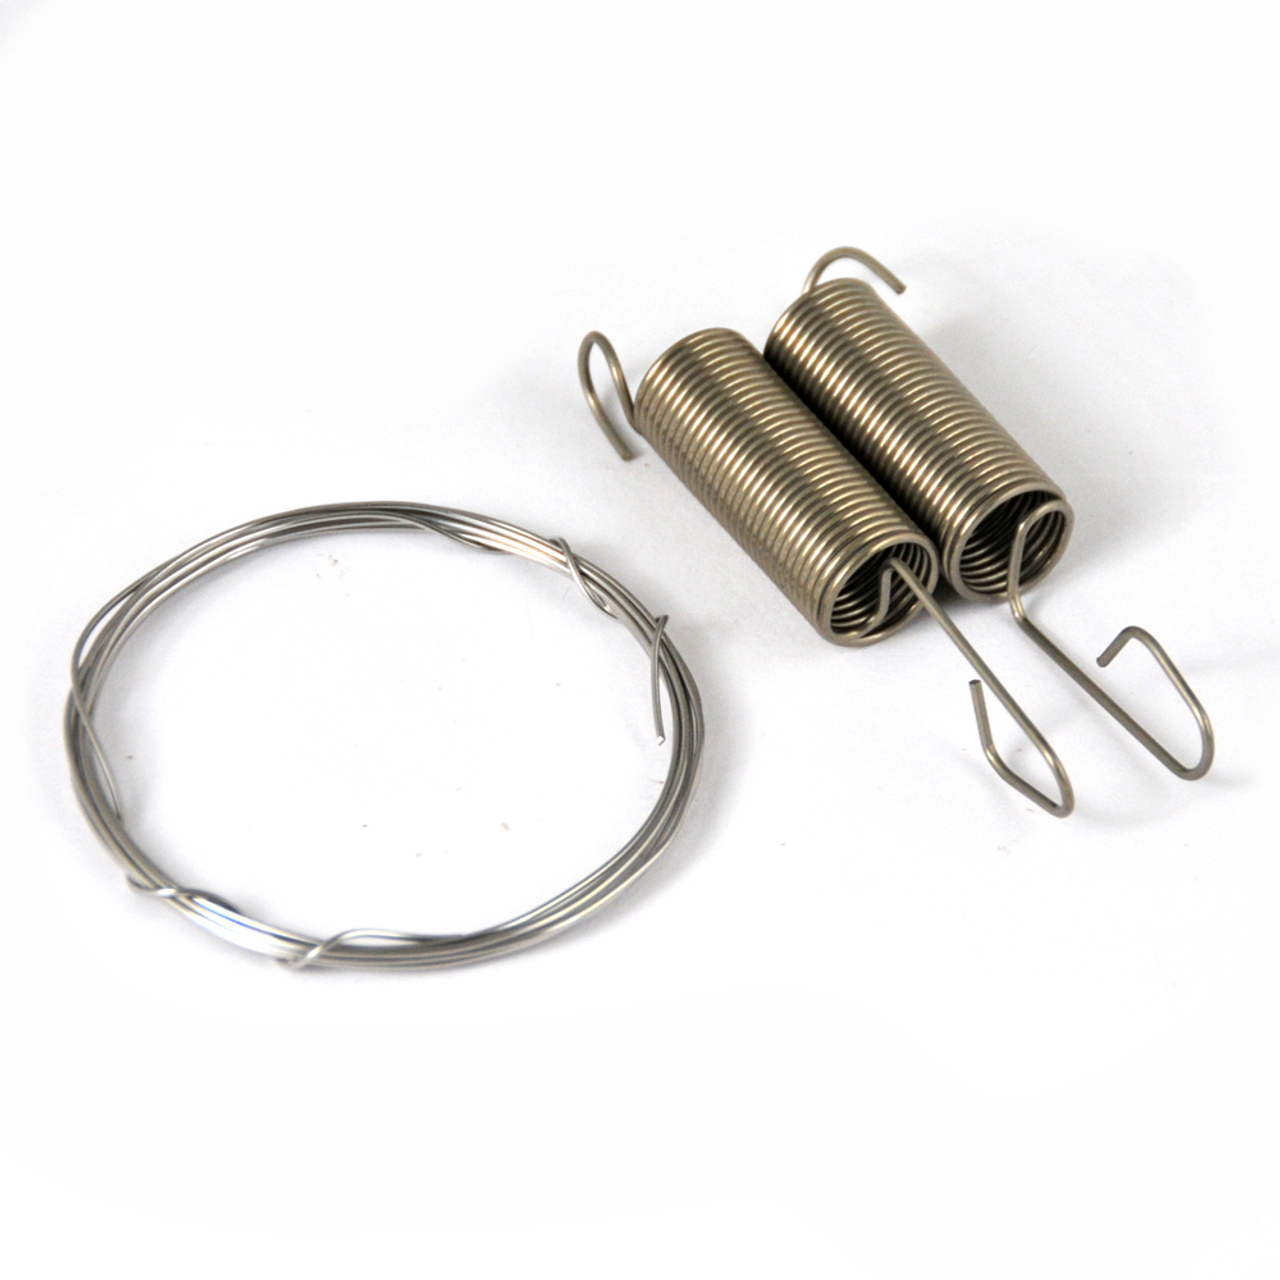 Wits' End T3-T4 Turbo Blanket - Lava (TBL-4) springs/wire